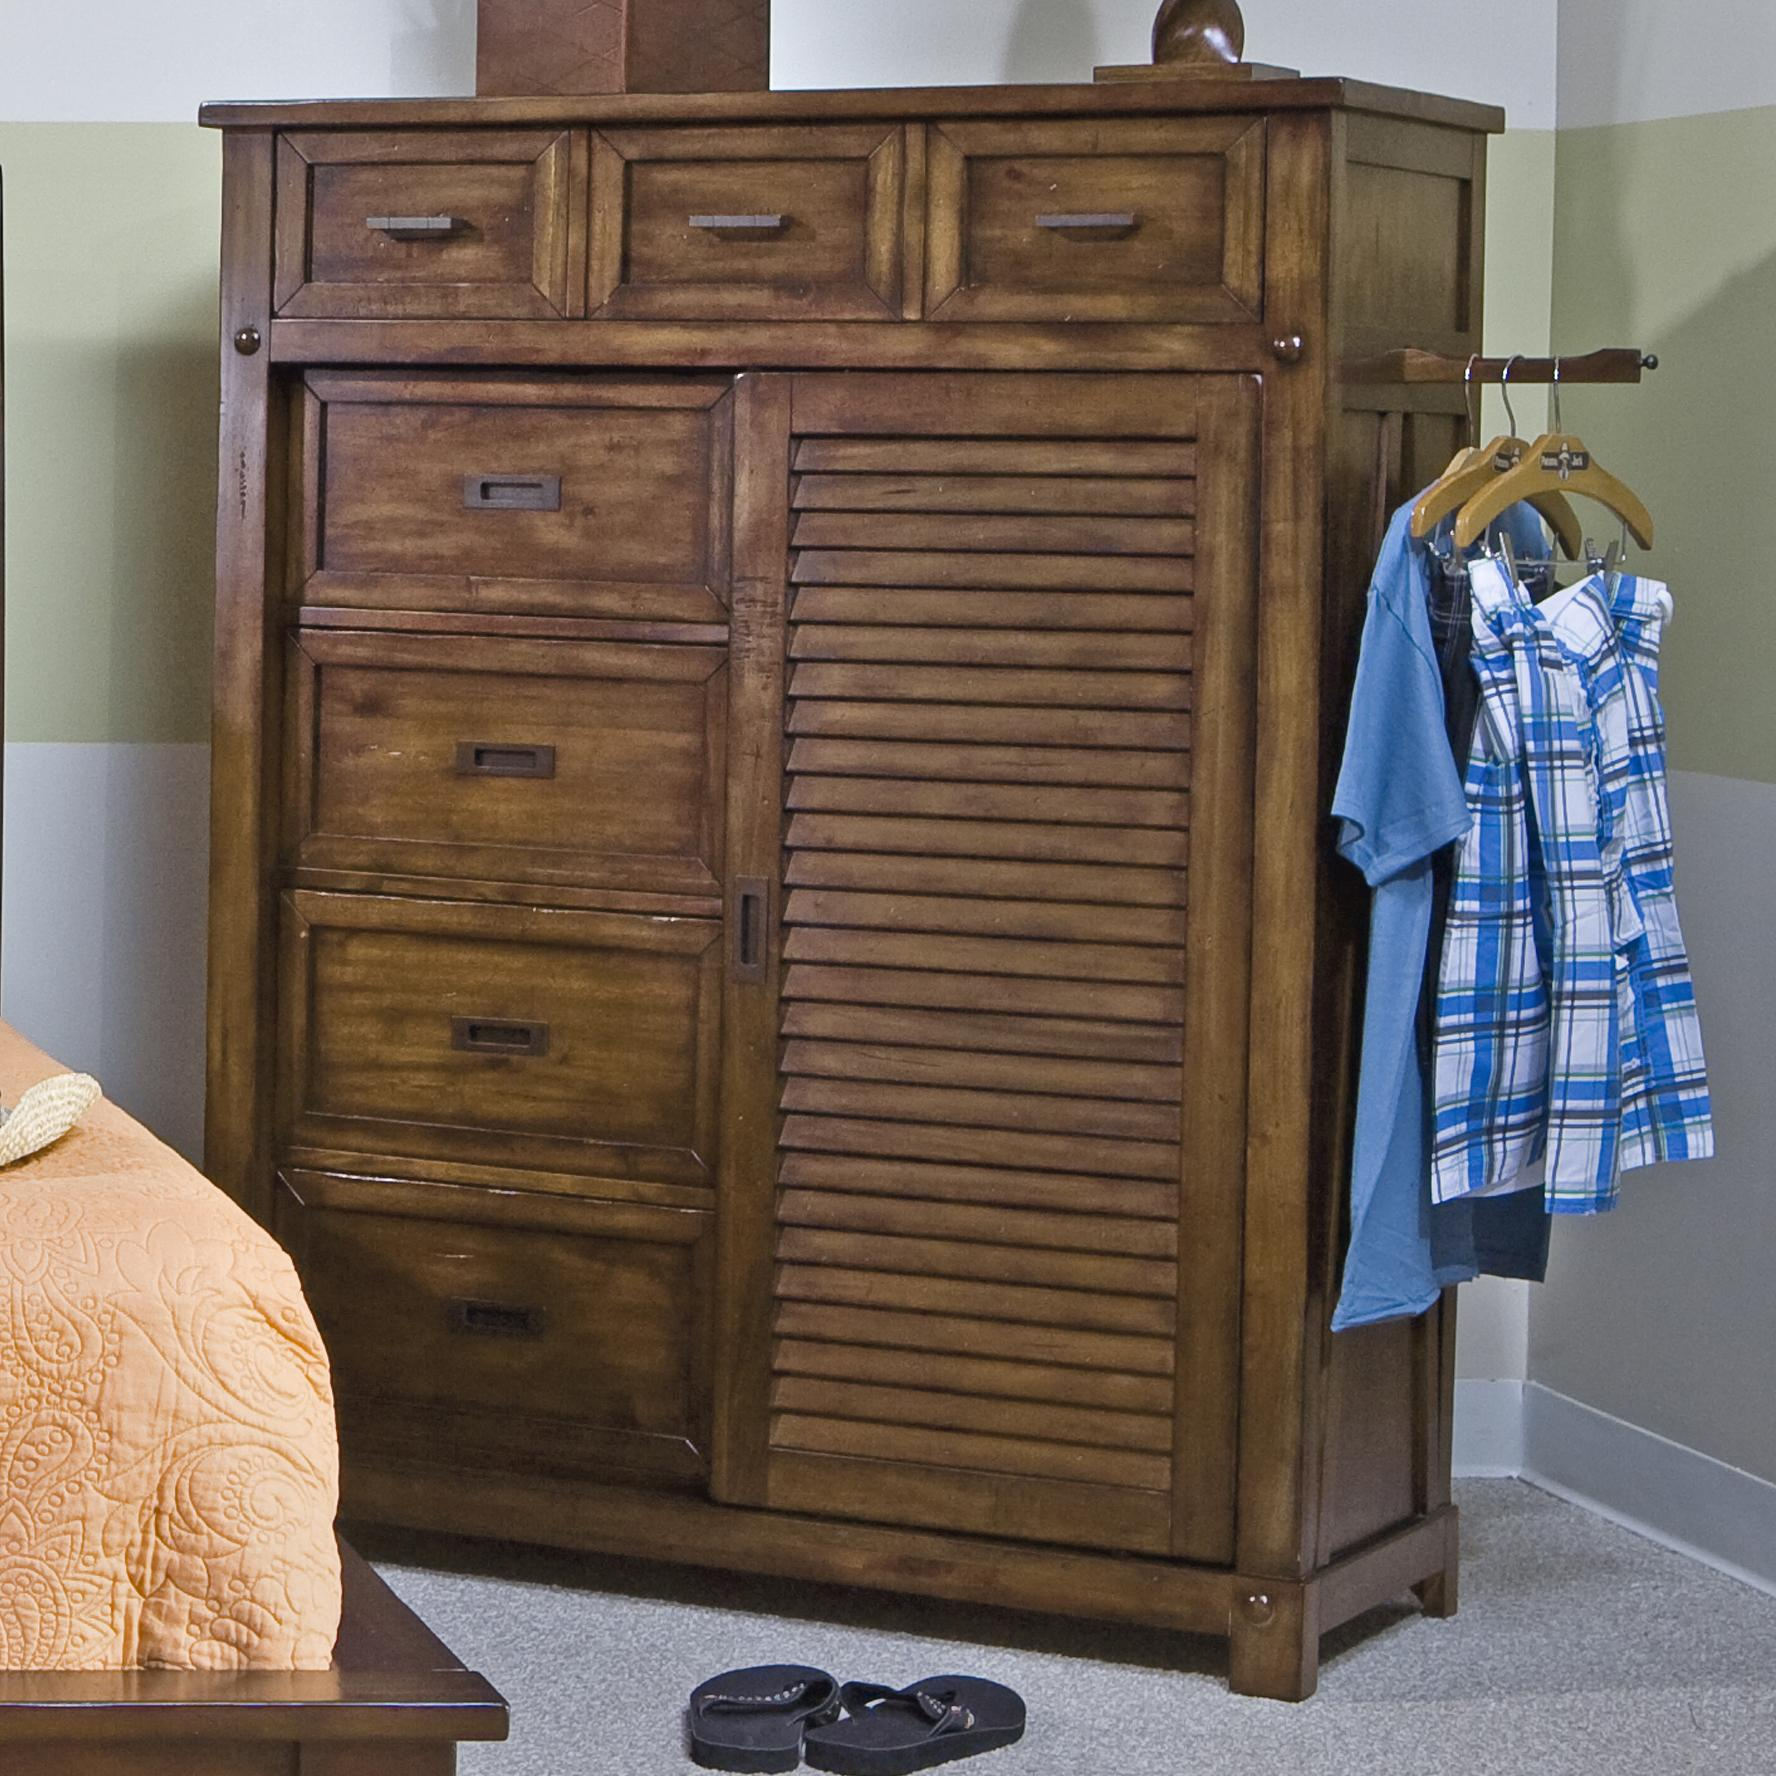 Sliding door bedroom furniture Wardrobes Sliding Panama Jack By Palmetto Home Eco Jack Coastal Slatted Sliding Door Chest With Drawers Blue Ridge Apartments Coastal Slatted Sliding Door Chest With Drawers Eco Jack By